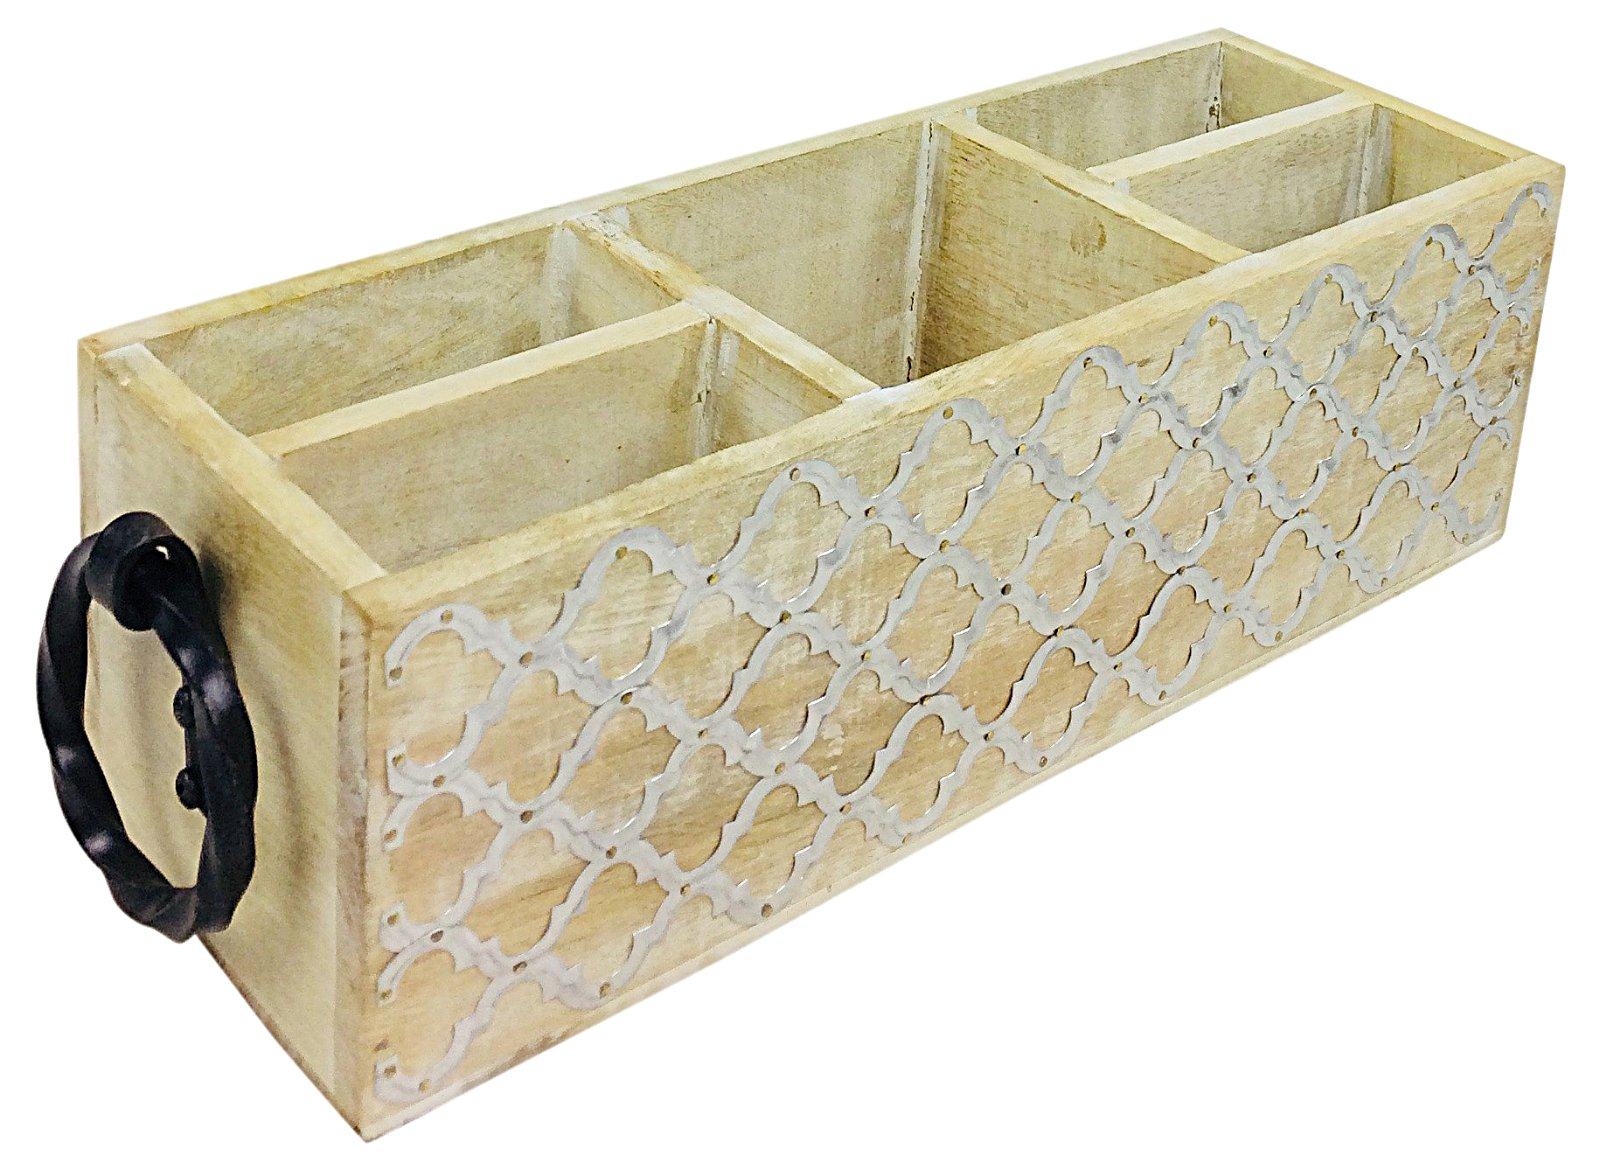 Wooden Cutlery Holder With Handles 40cm